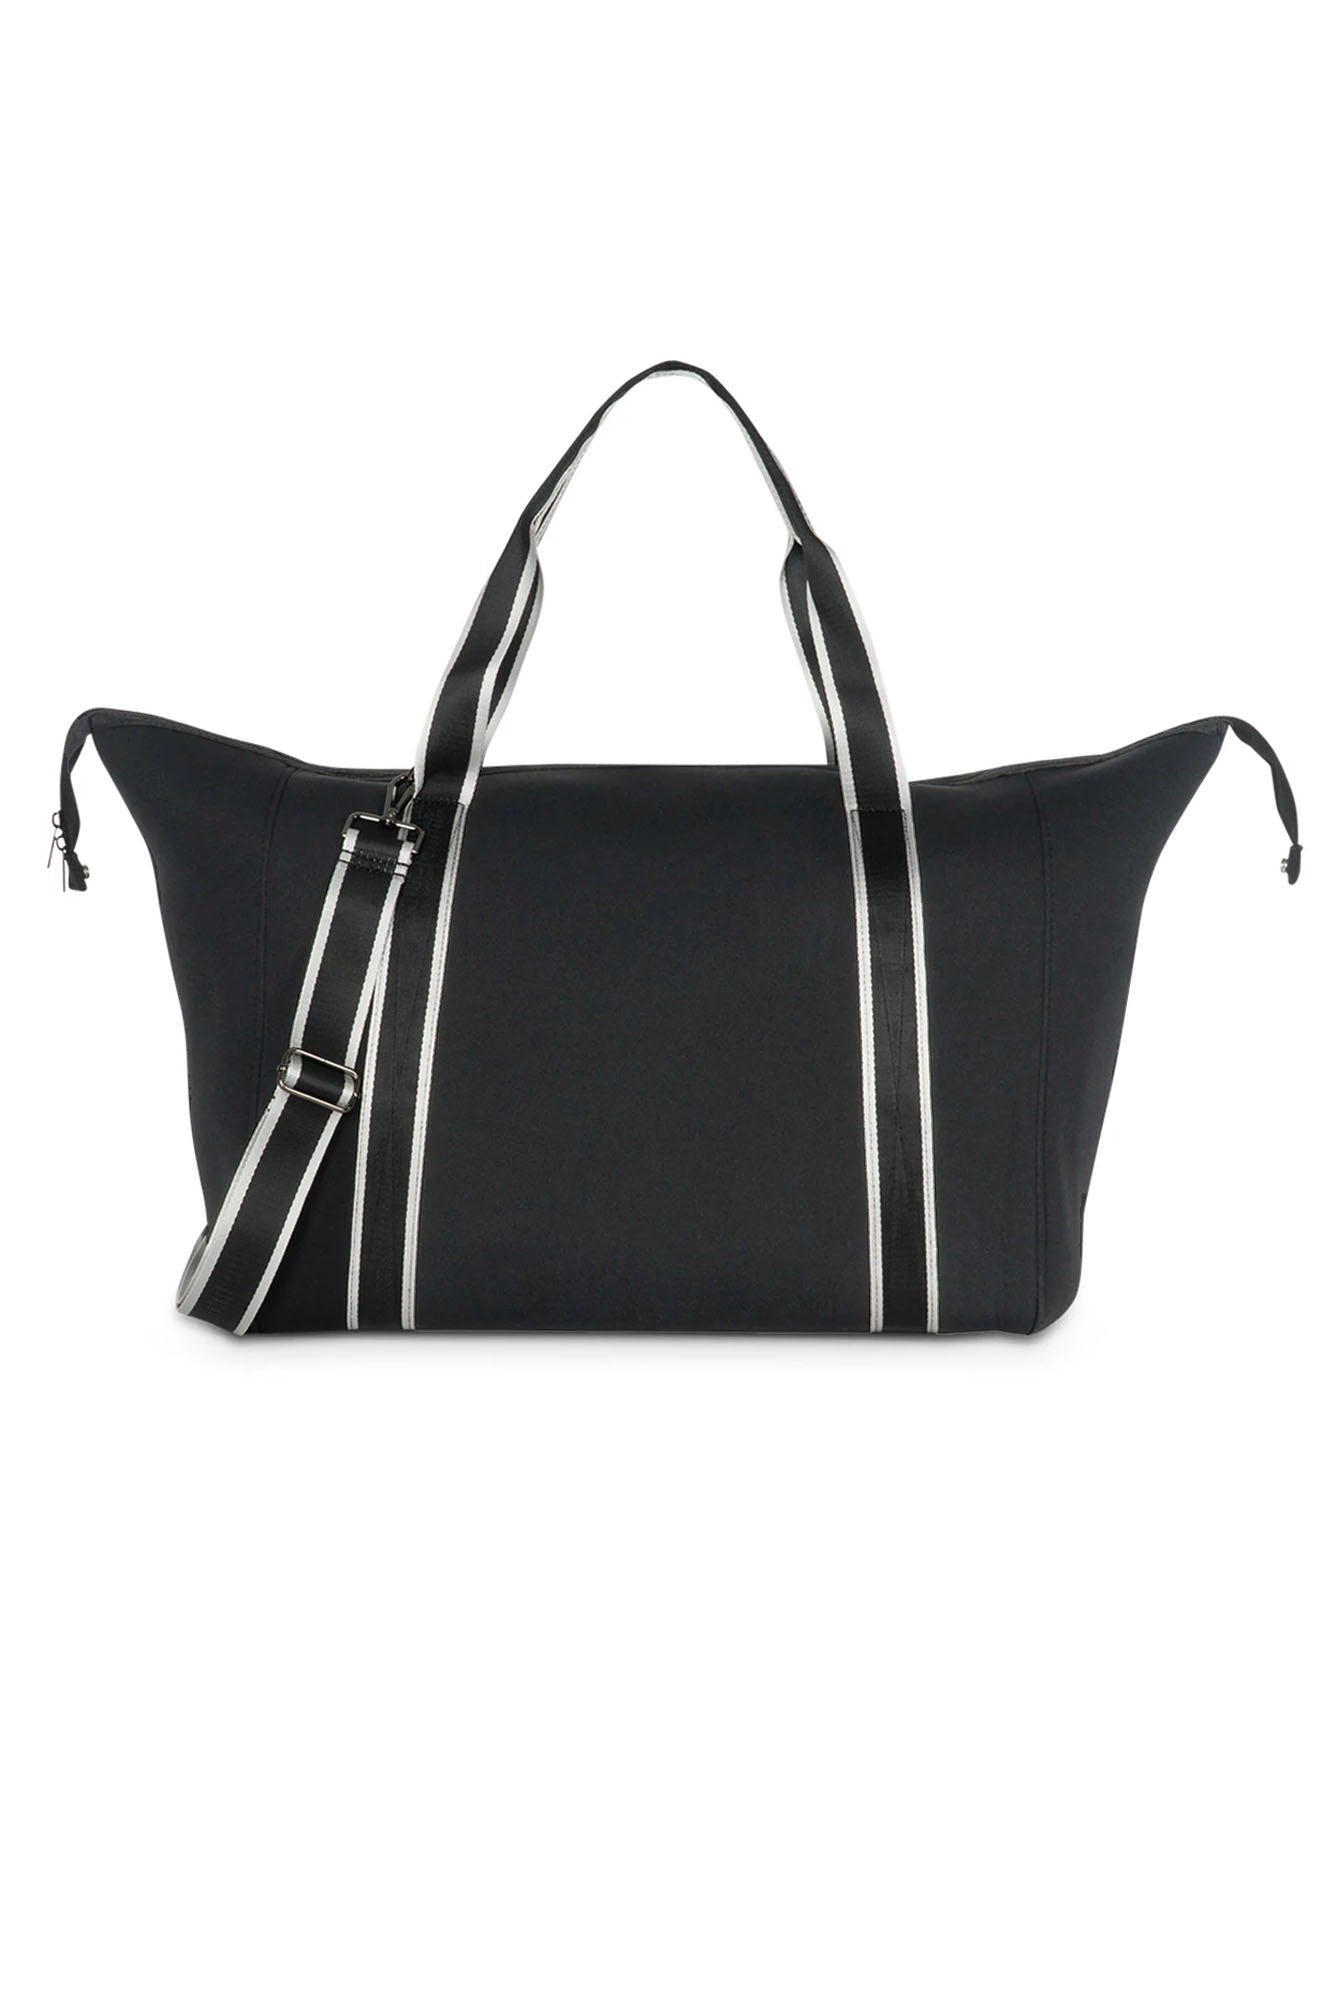 Haute Shore - Morgan Jaunt (Morgan, Black w/Silver Straps)